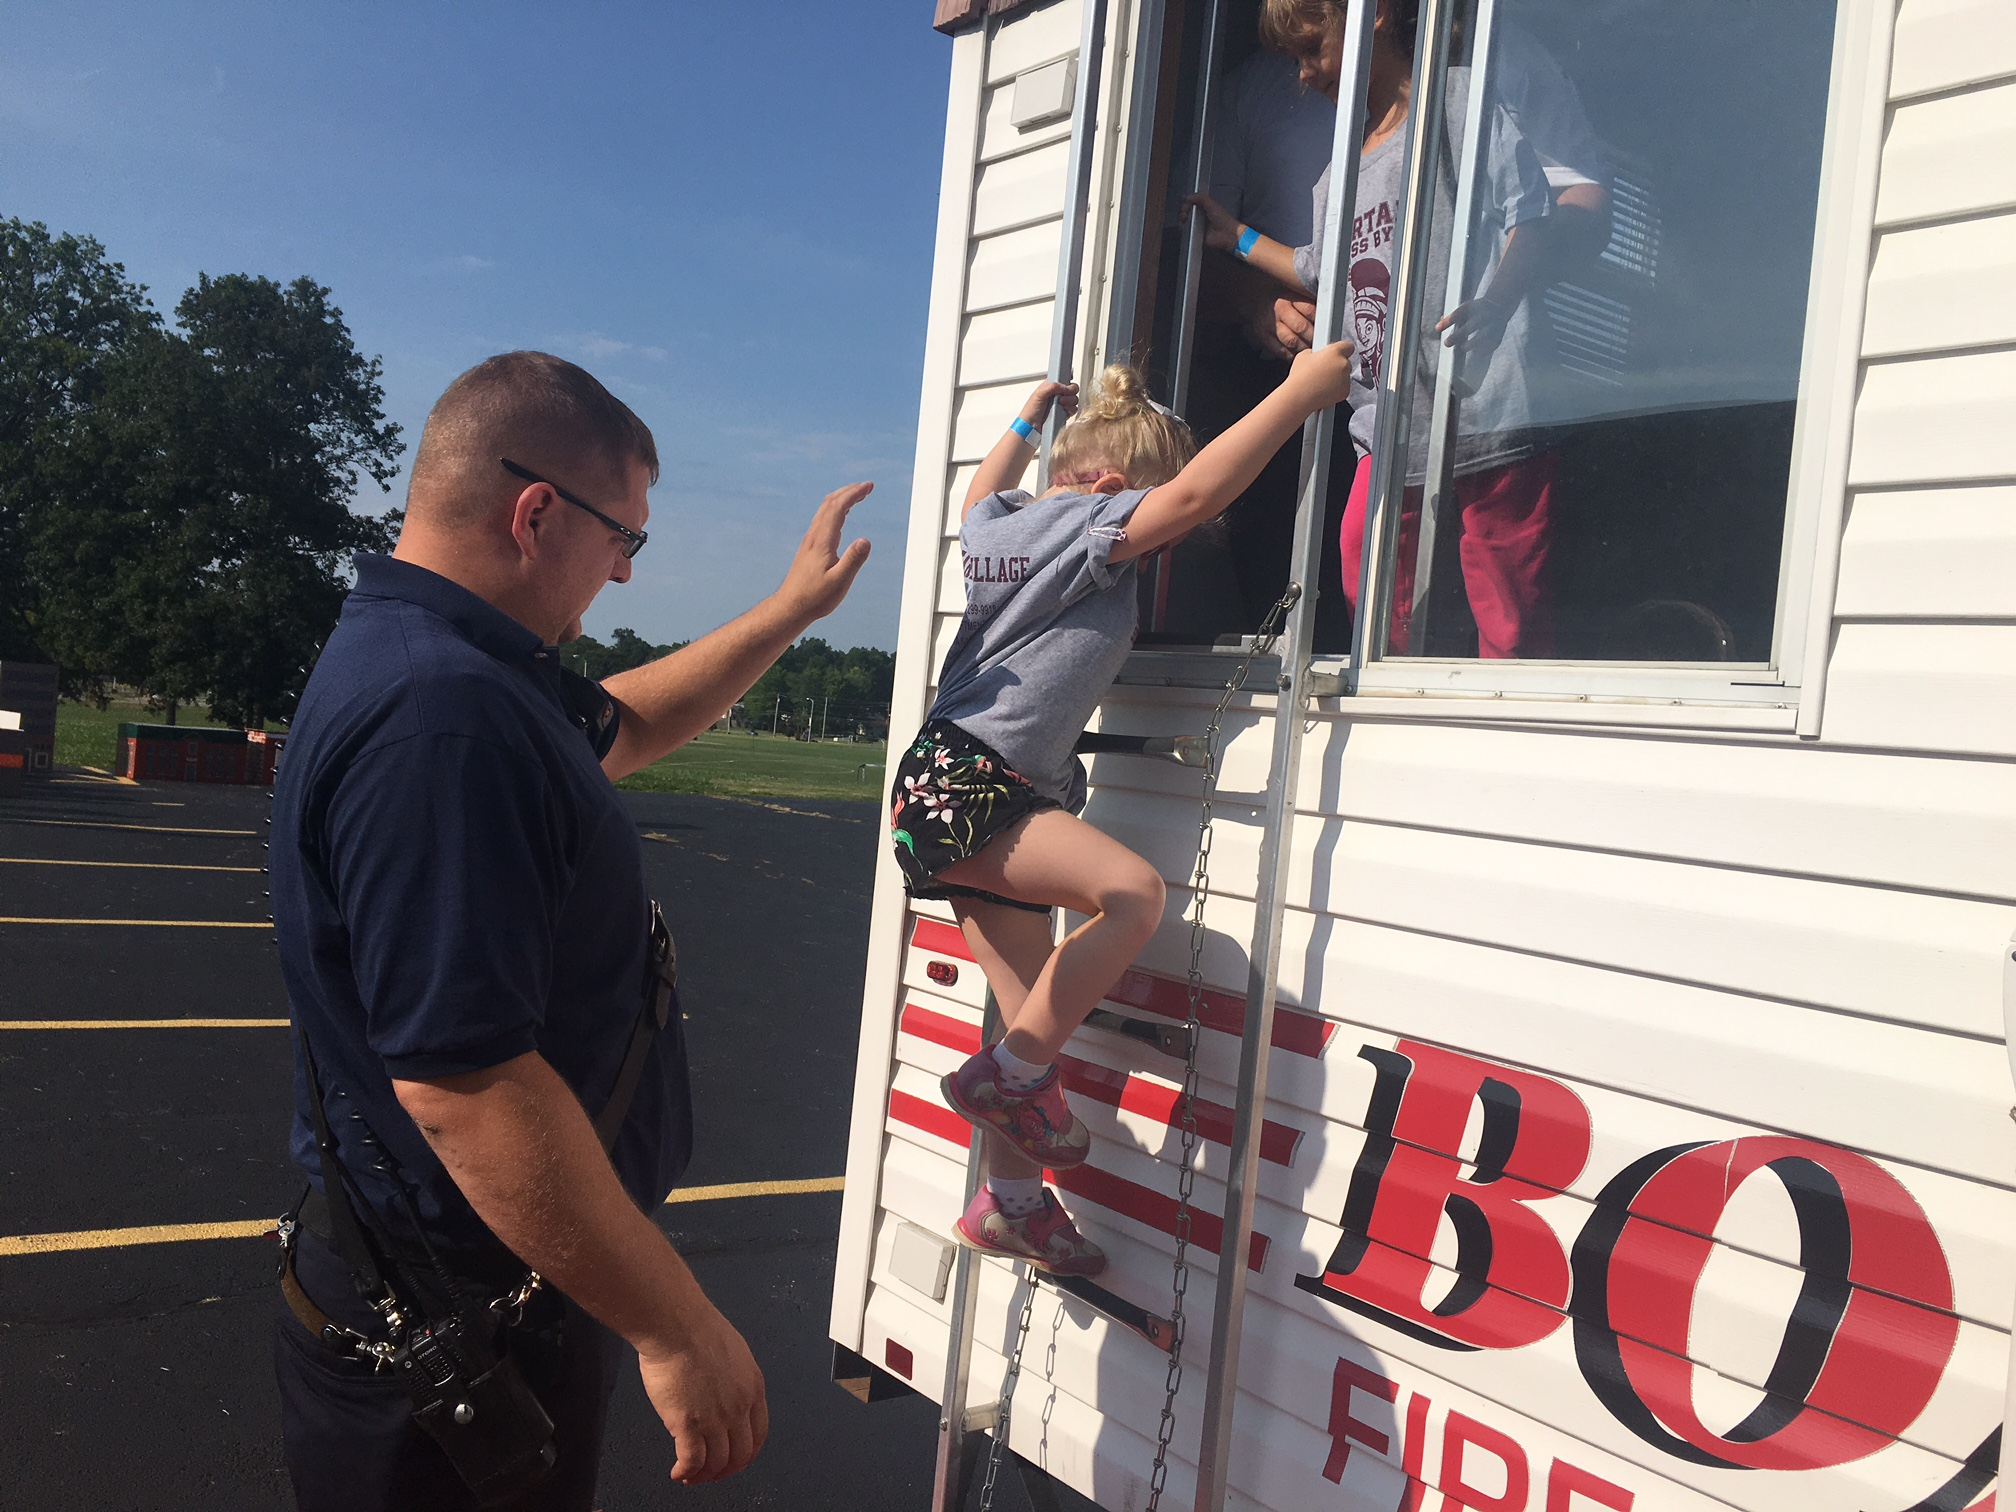 fire fighter helping student climb down ladder of mobile fire trailer